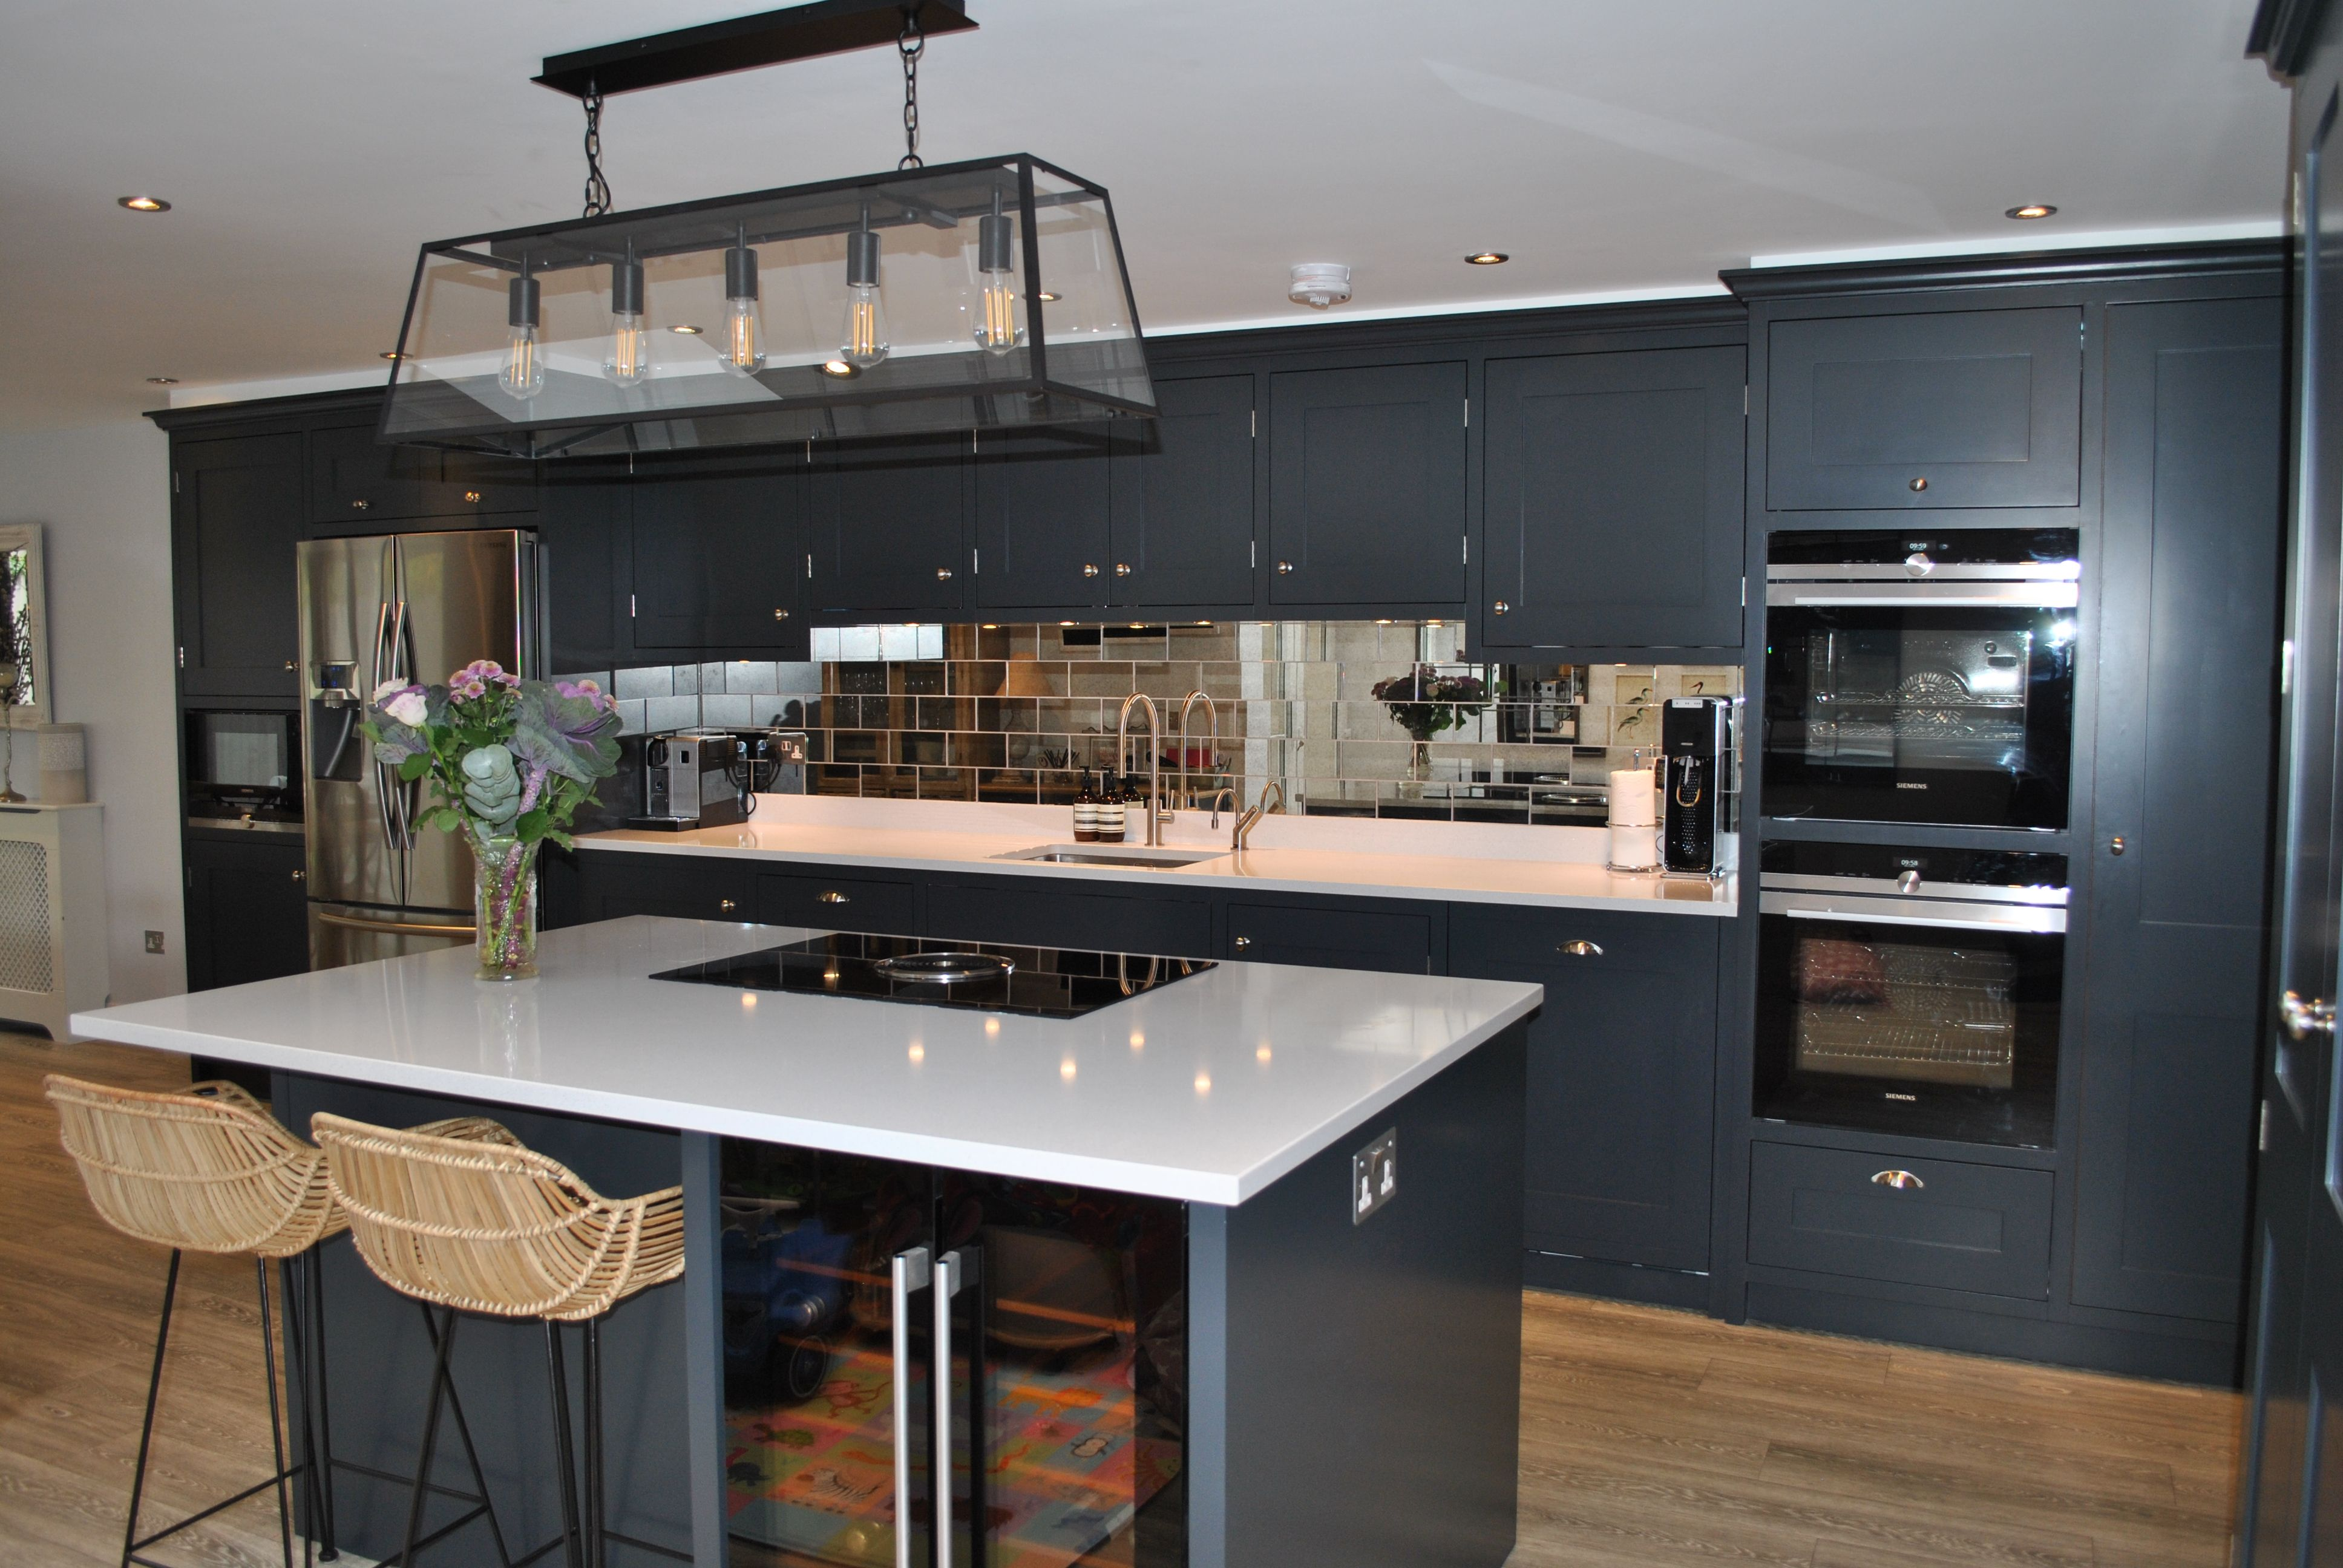 Clapham Shaker Kitchen: This Beautiful London Shaker Is Painted In A Stunning Dark